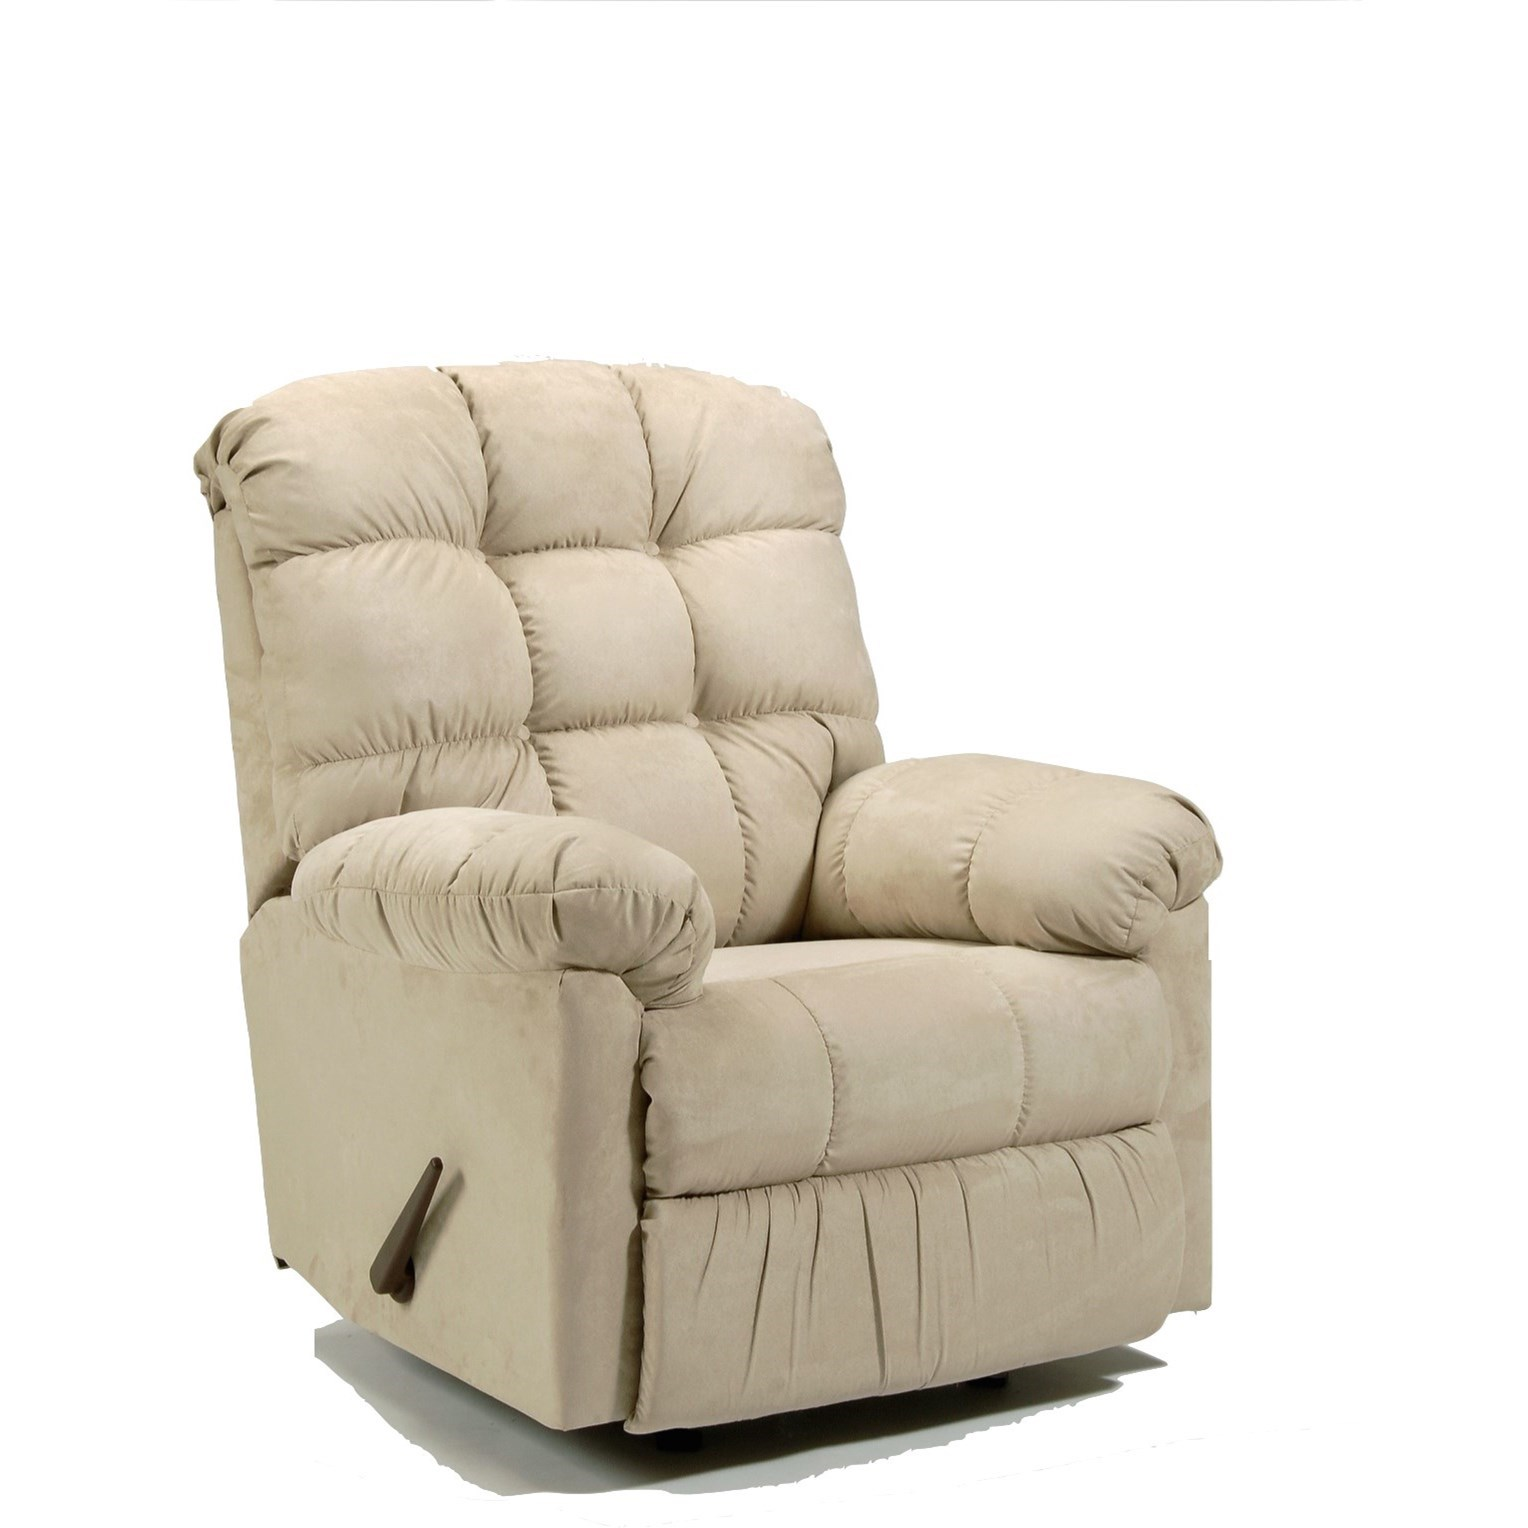 Serta Upholstery by Hughes Furniture 400 Recliner - Item Number: 400RCL - PASA